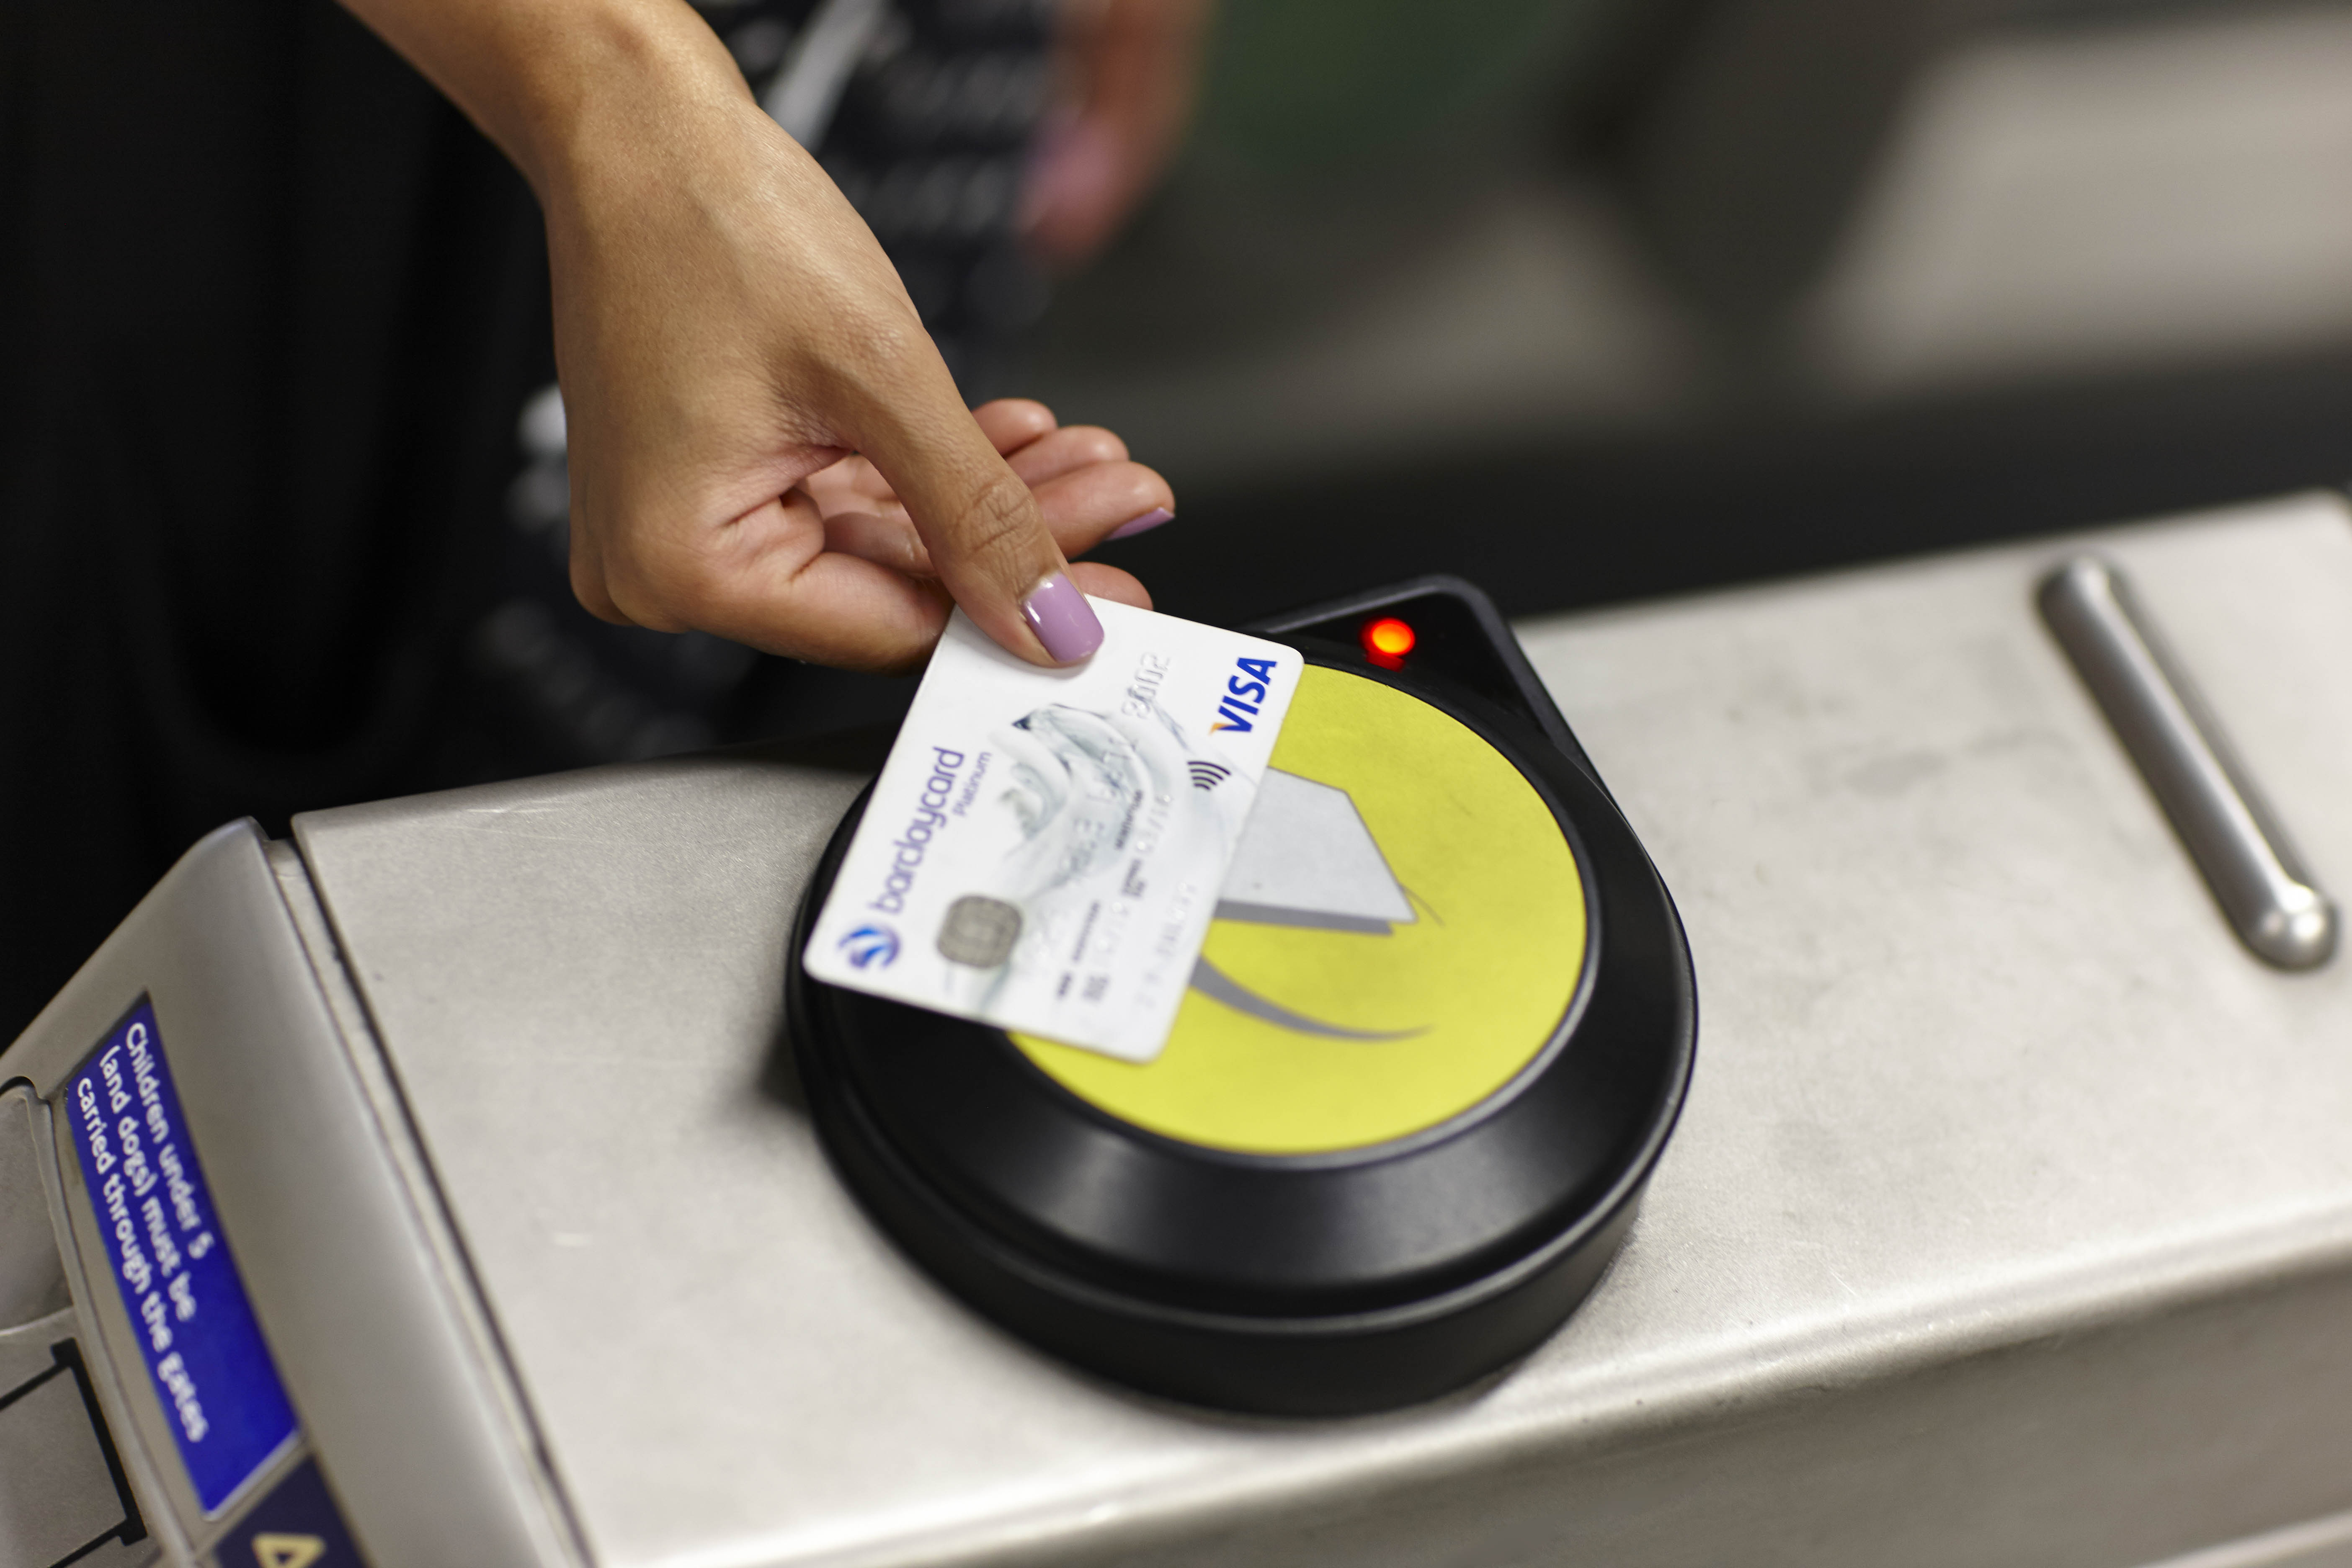 A touch payment is demonstrated as Visa Europe launches contactless payments